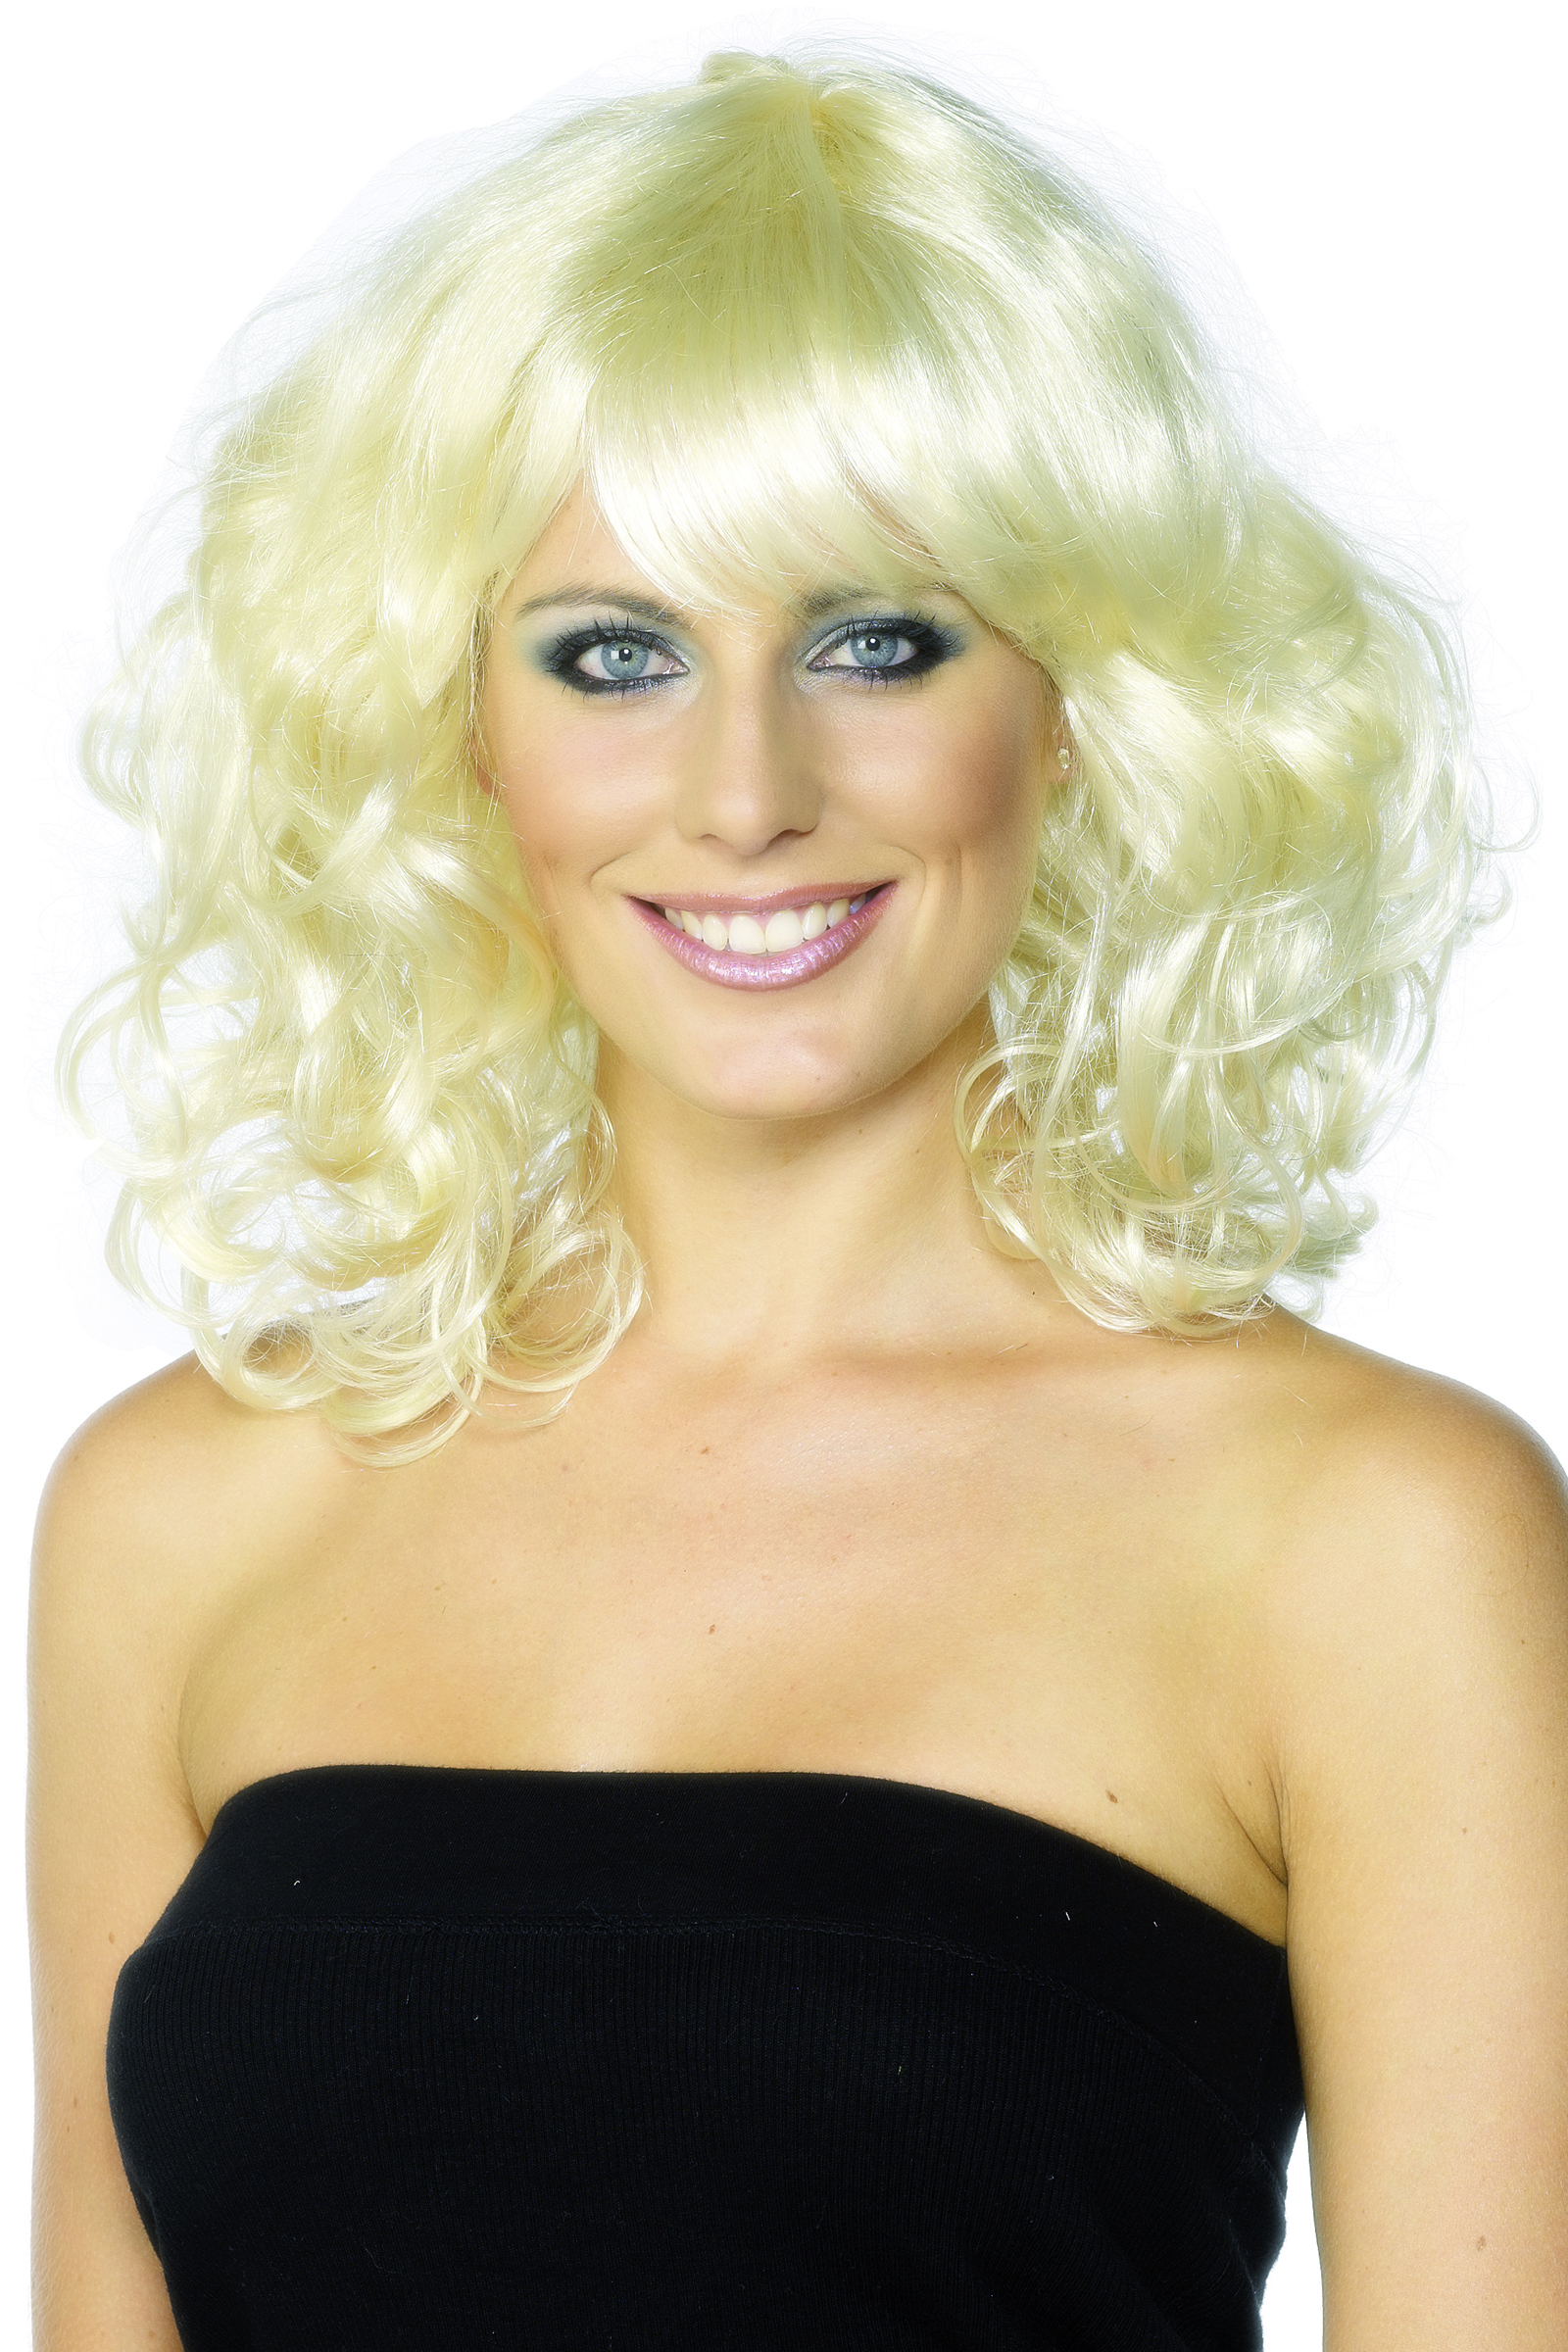 Wavy blonde wig for women wigs and fancy dress costumes vegaoo - Femme blonde photo ...